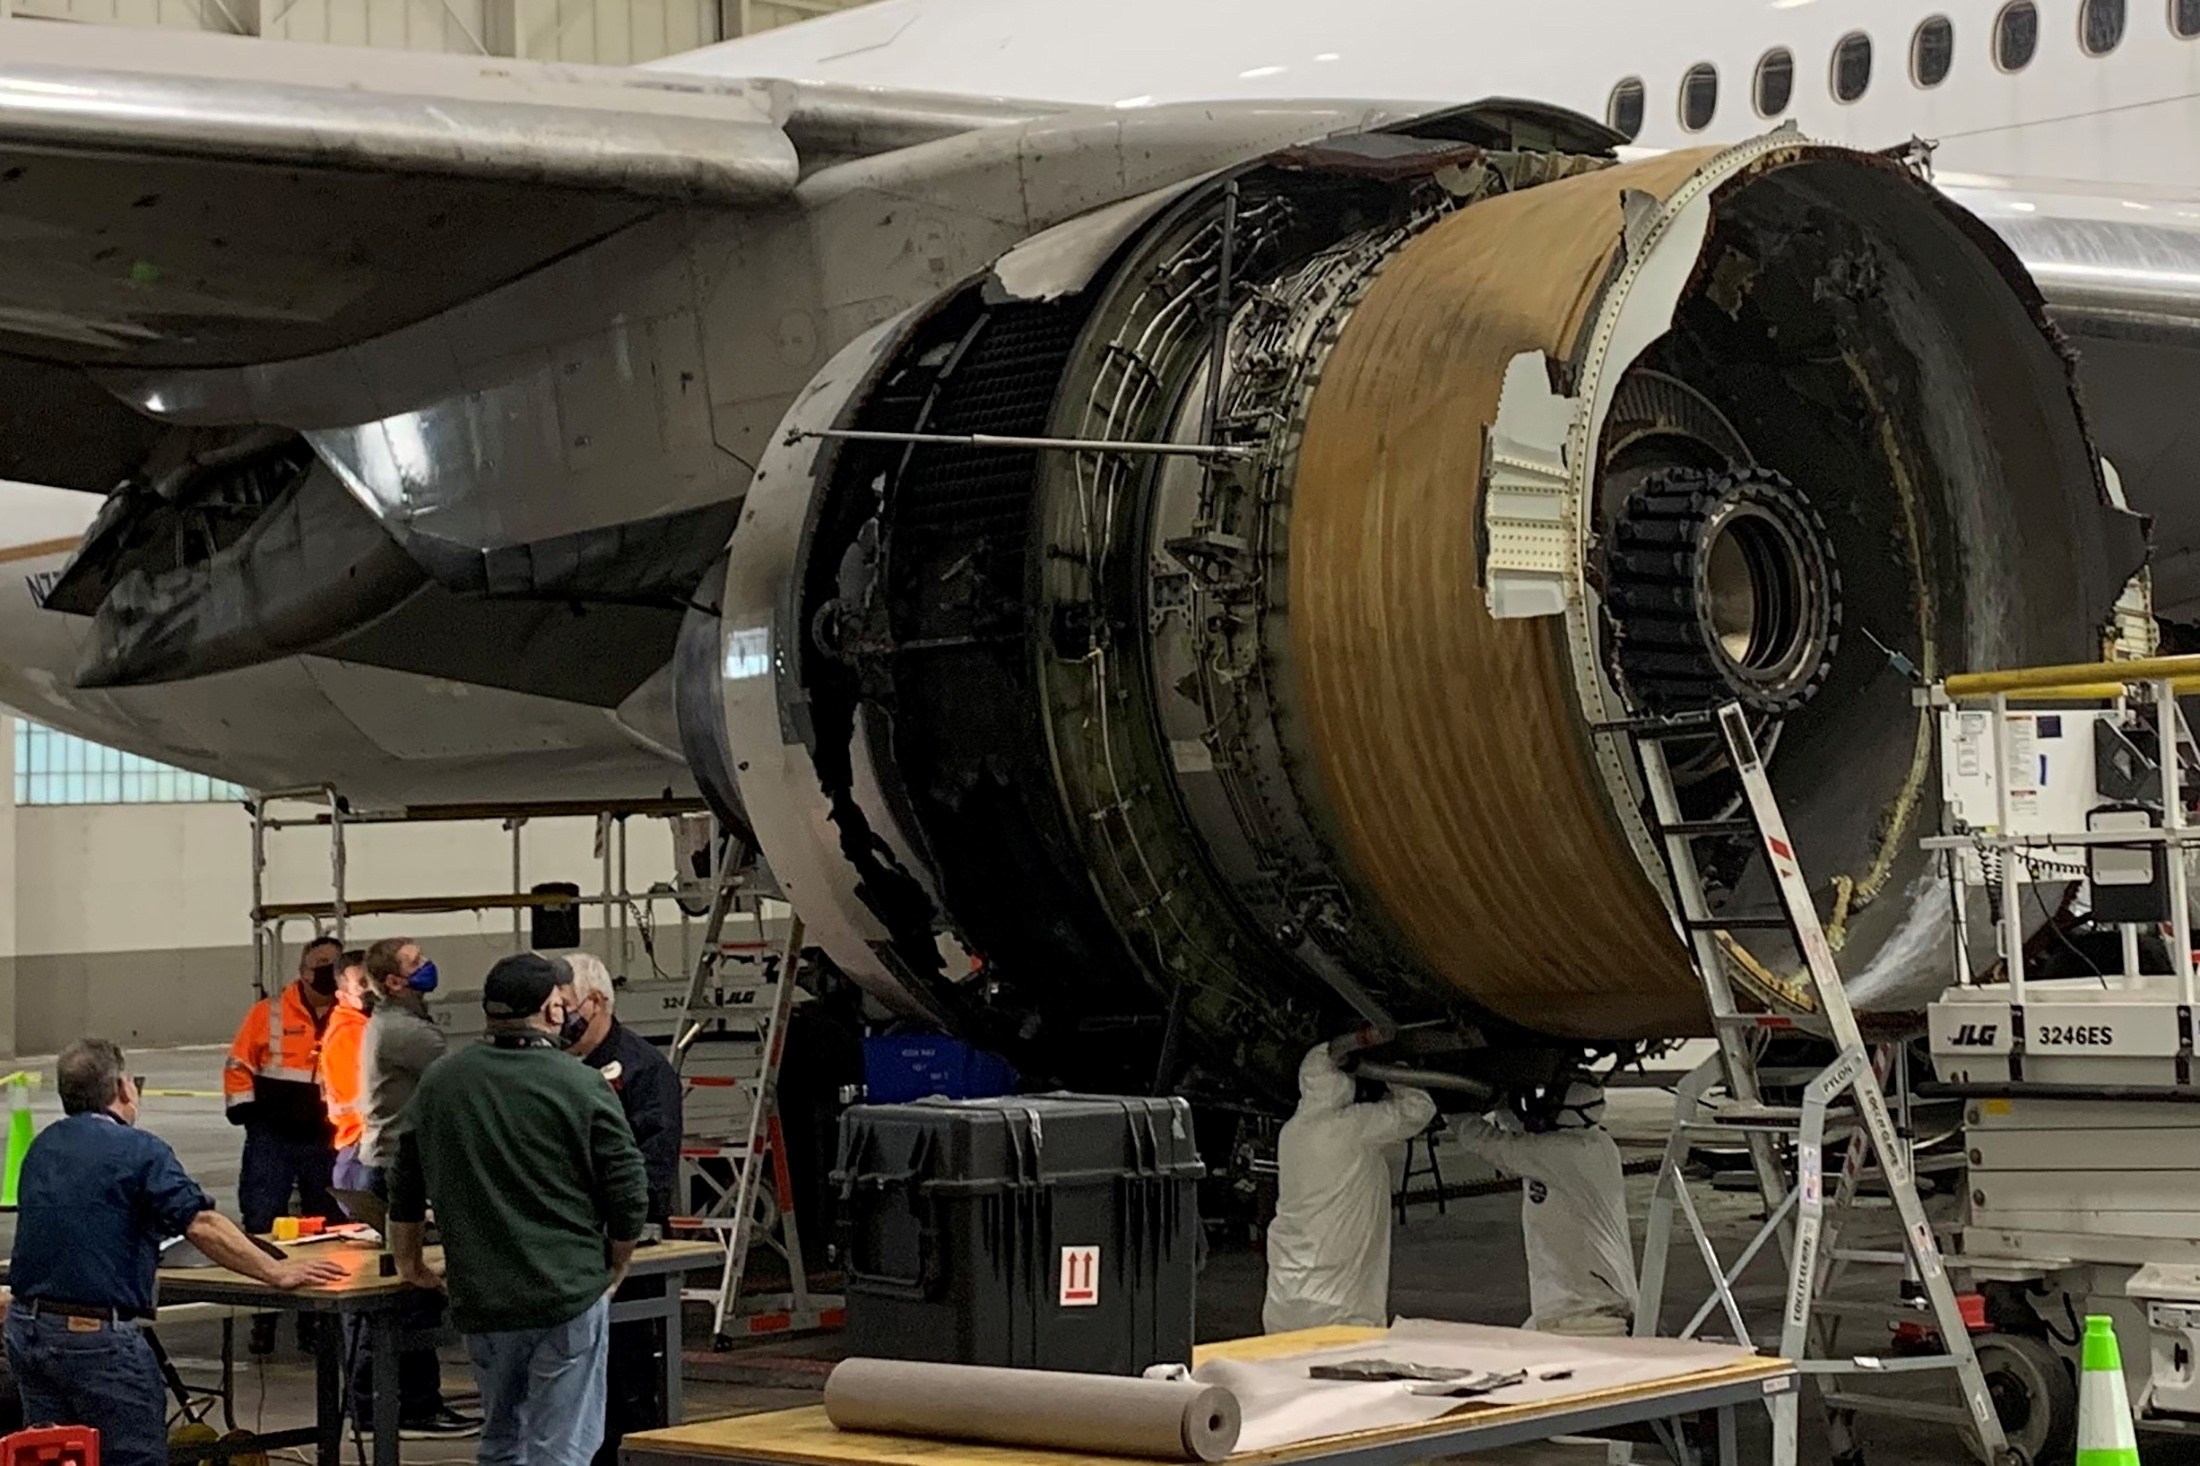 The damaged starboard engine of United Airlines flight 328, a Boeing 777-200, is seen following a February 20 engine failure incident, in a hangar at Denver International Airport in Denver, Colorado, U.S. February 22, 2021. National Transportation Safety Board/Handout via REUTERS.